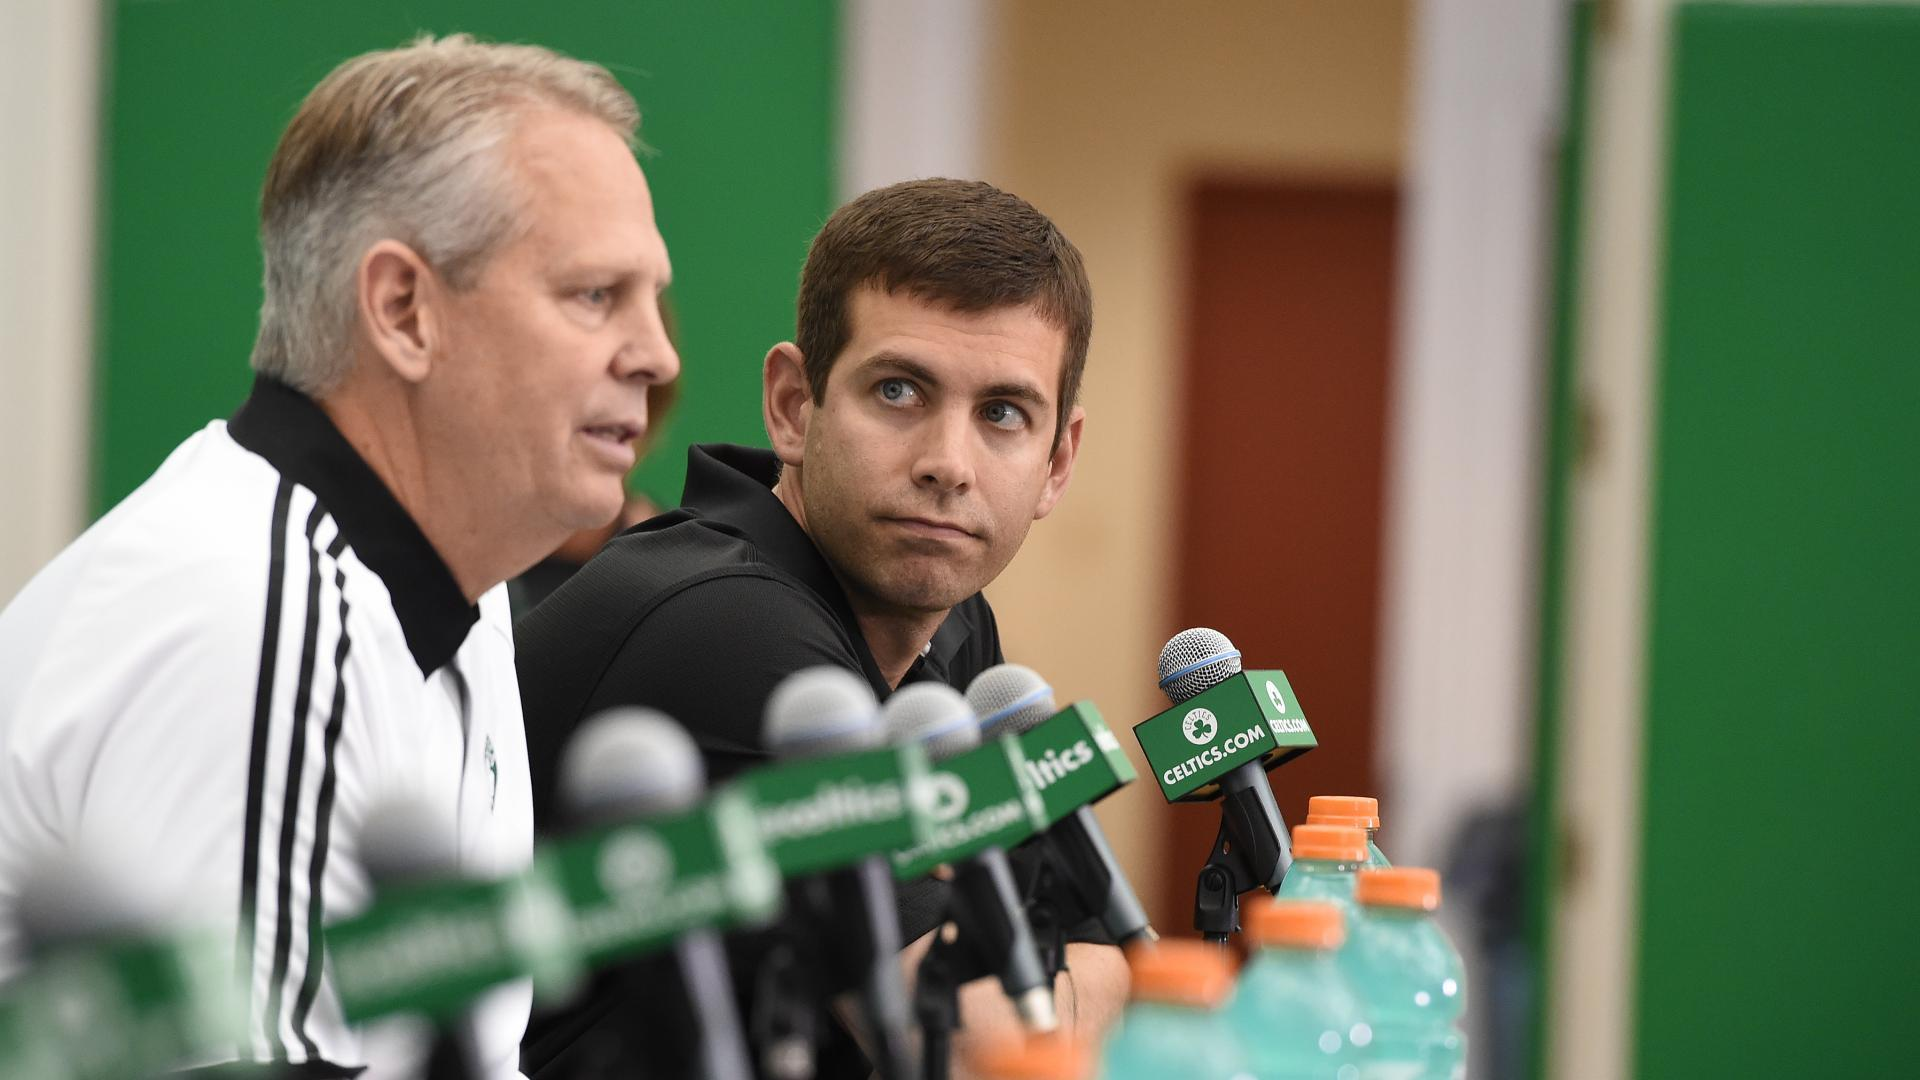 In trading No 1 pick Danny Ainge stays true to his path for